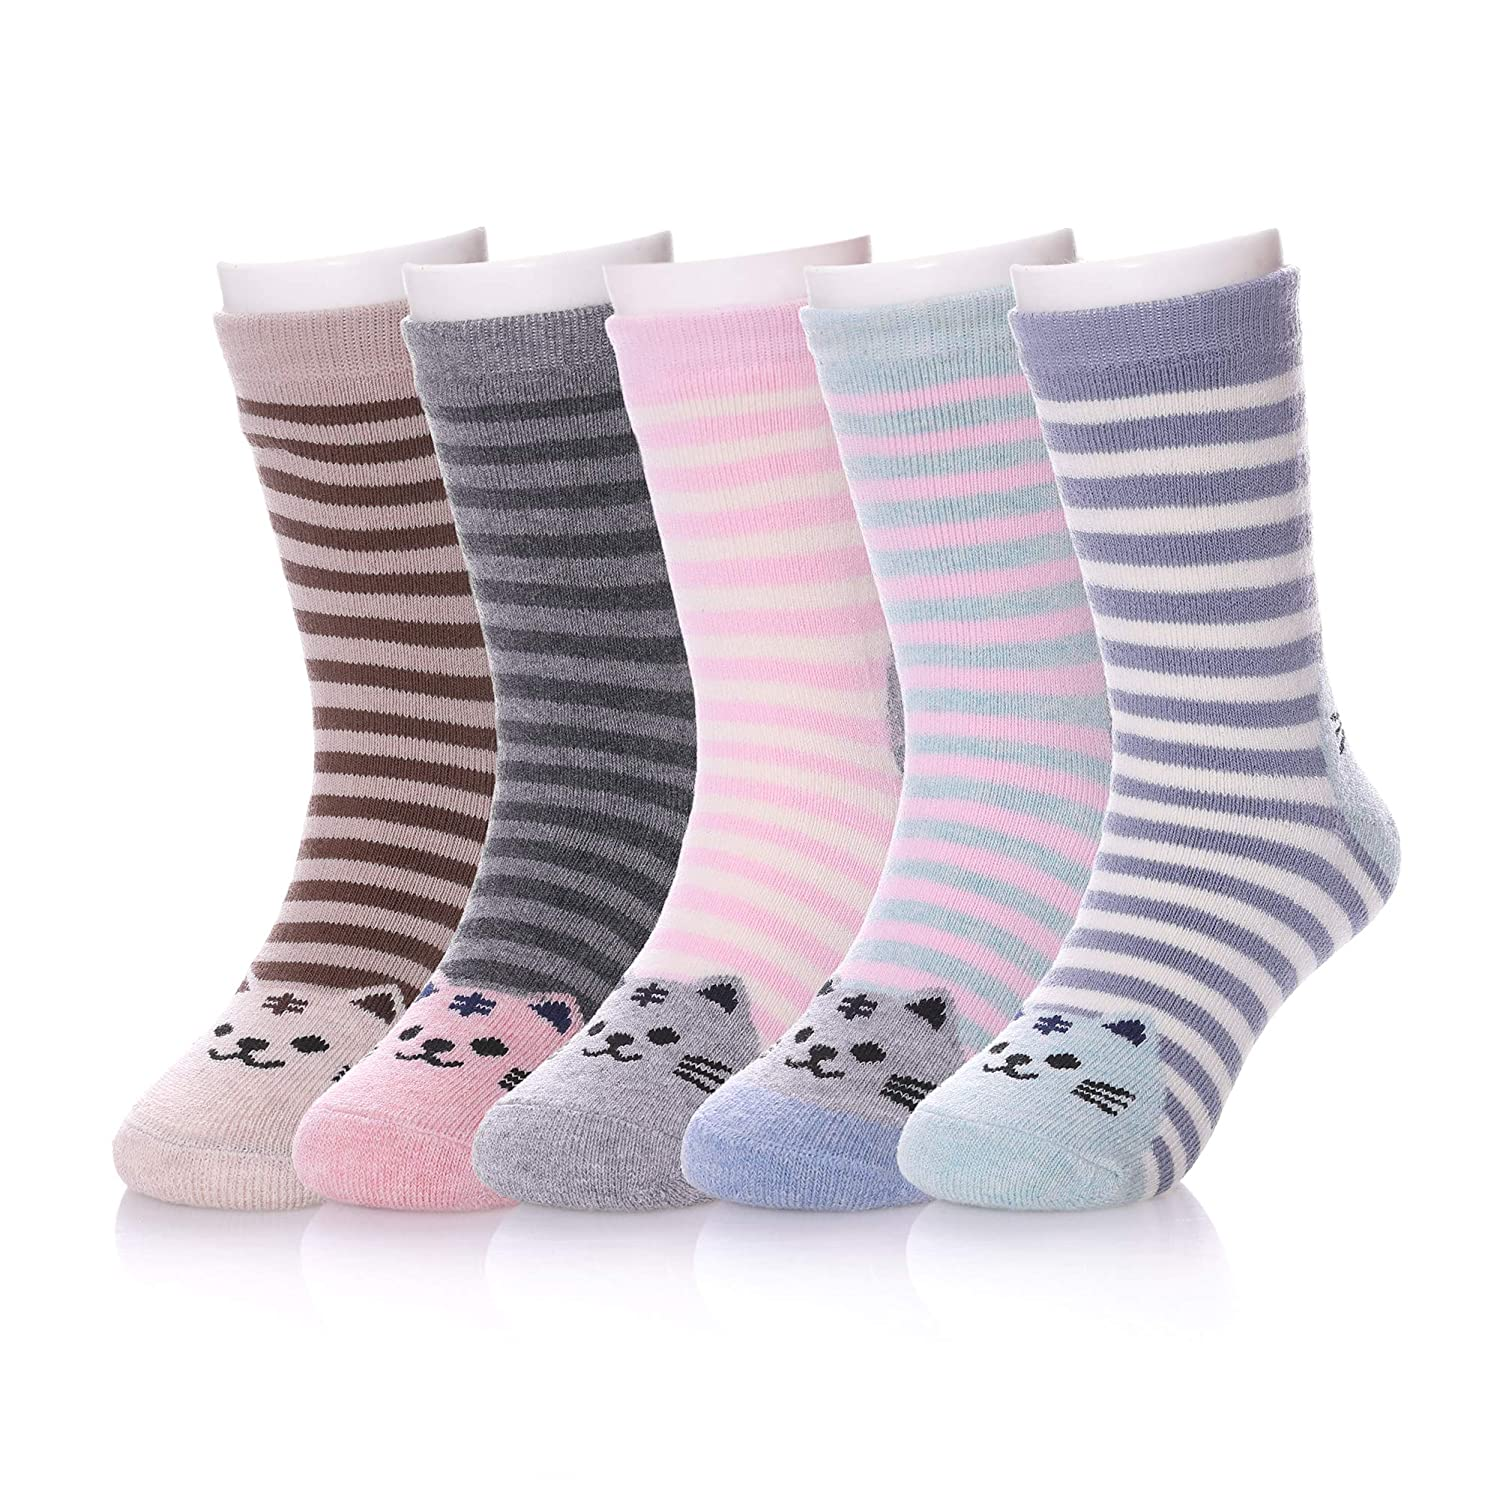 HERHILLY Toddler Kids Winter Cartoon Cat Cotton Socks Boys Girls Athletic Crew Socks For 1-12 Year Old 5 Pack